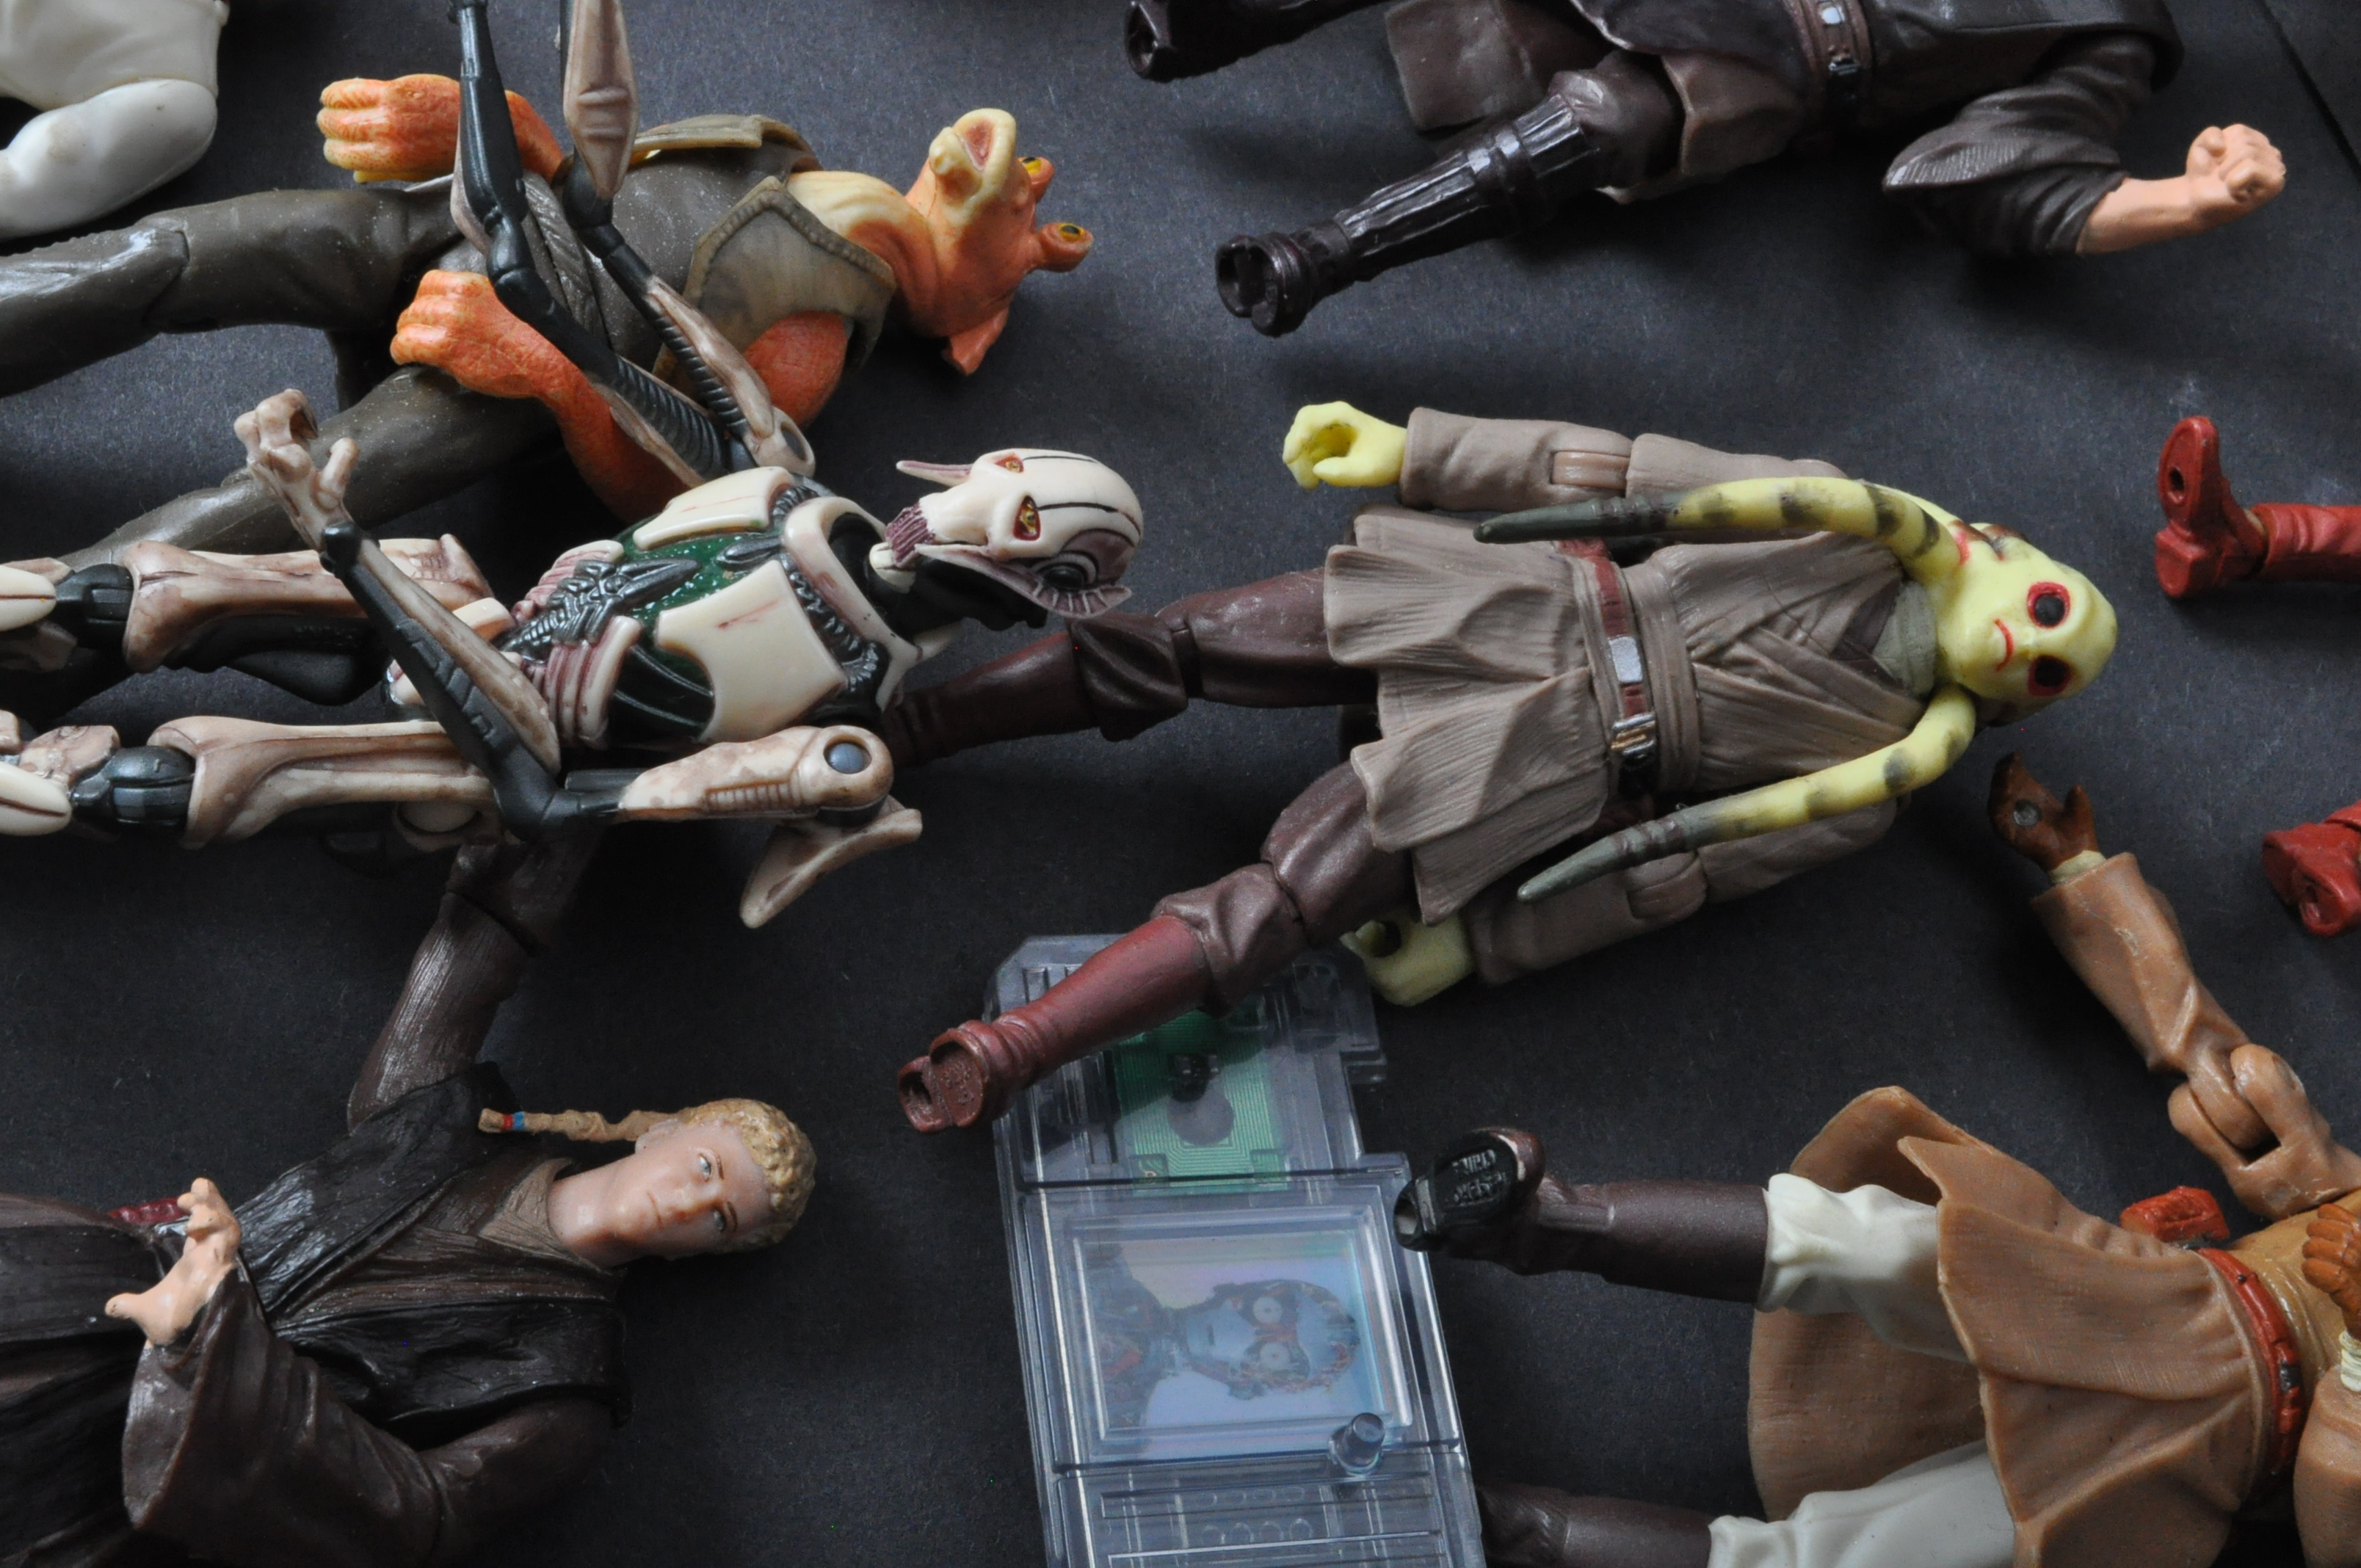 STAR WARS - LARGE COLLECTION KENNER / HASBRO CLONE WARS & OTHER FIGURES - Image 10 of 10